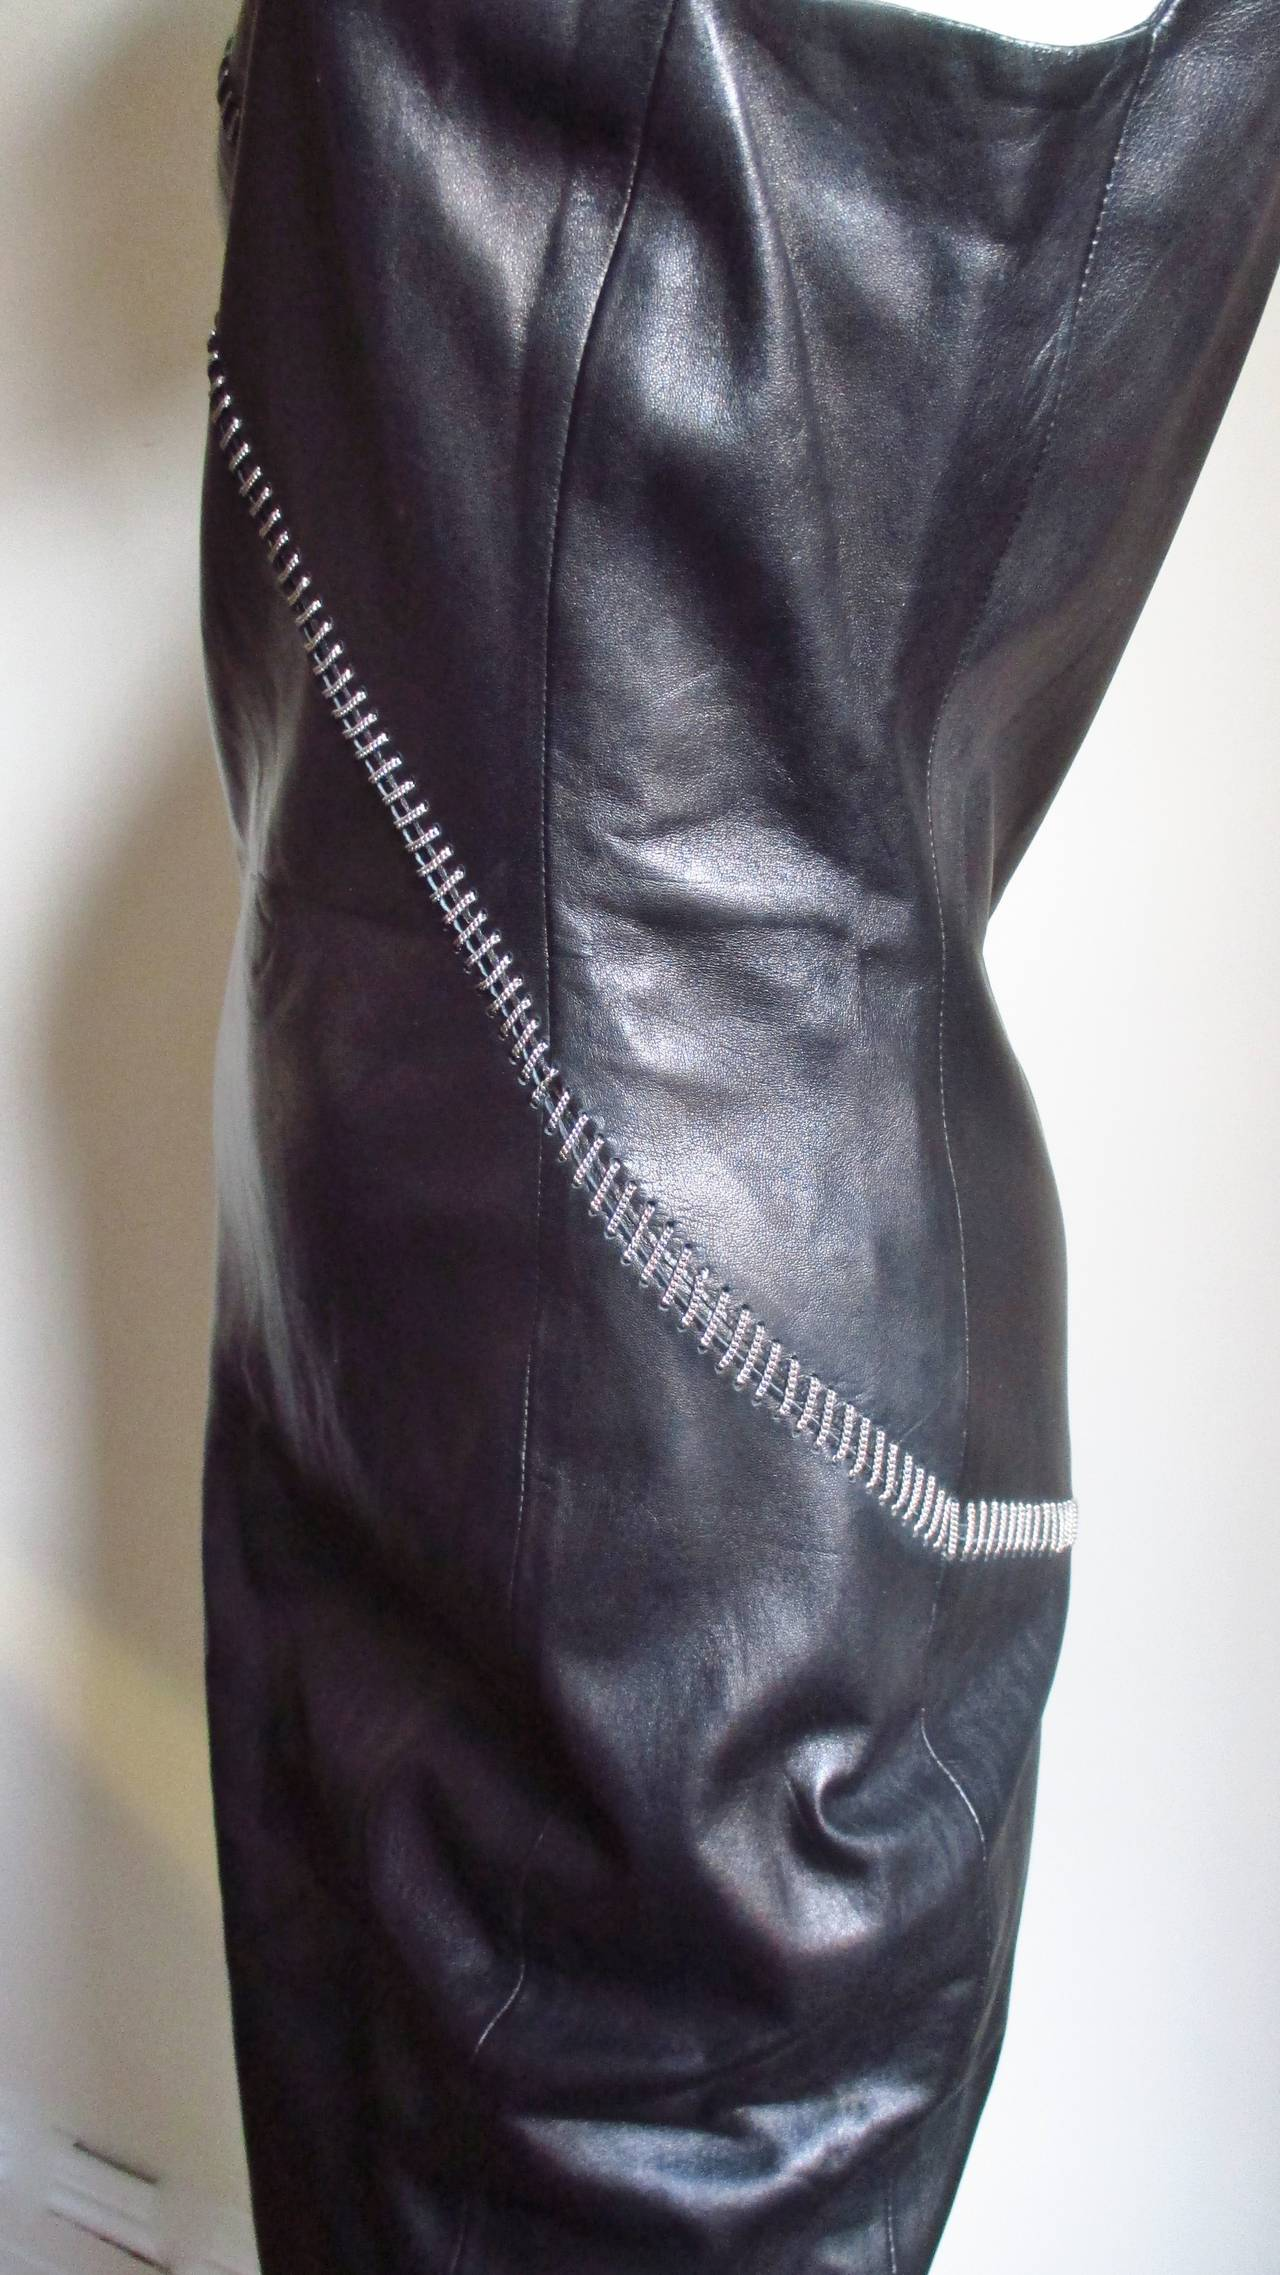 Gianni Versace Leather Dress With Chains 7